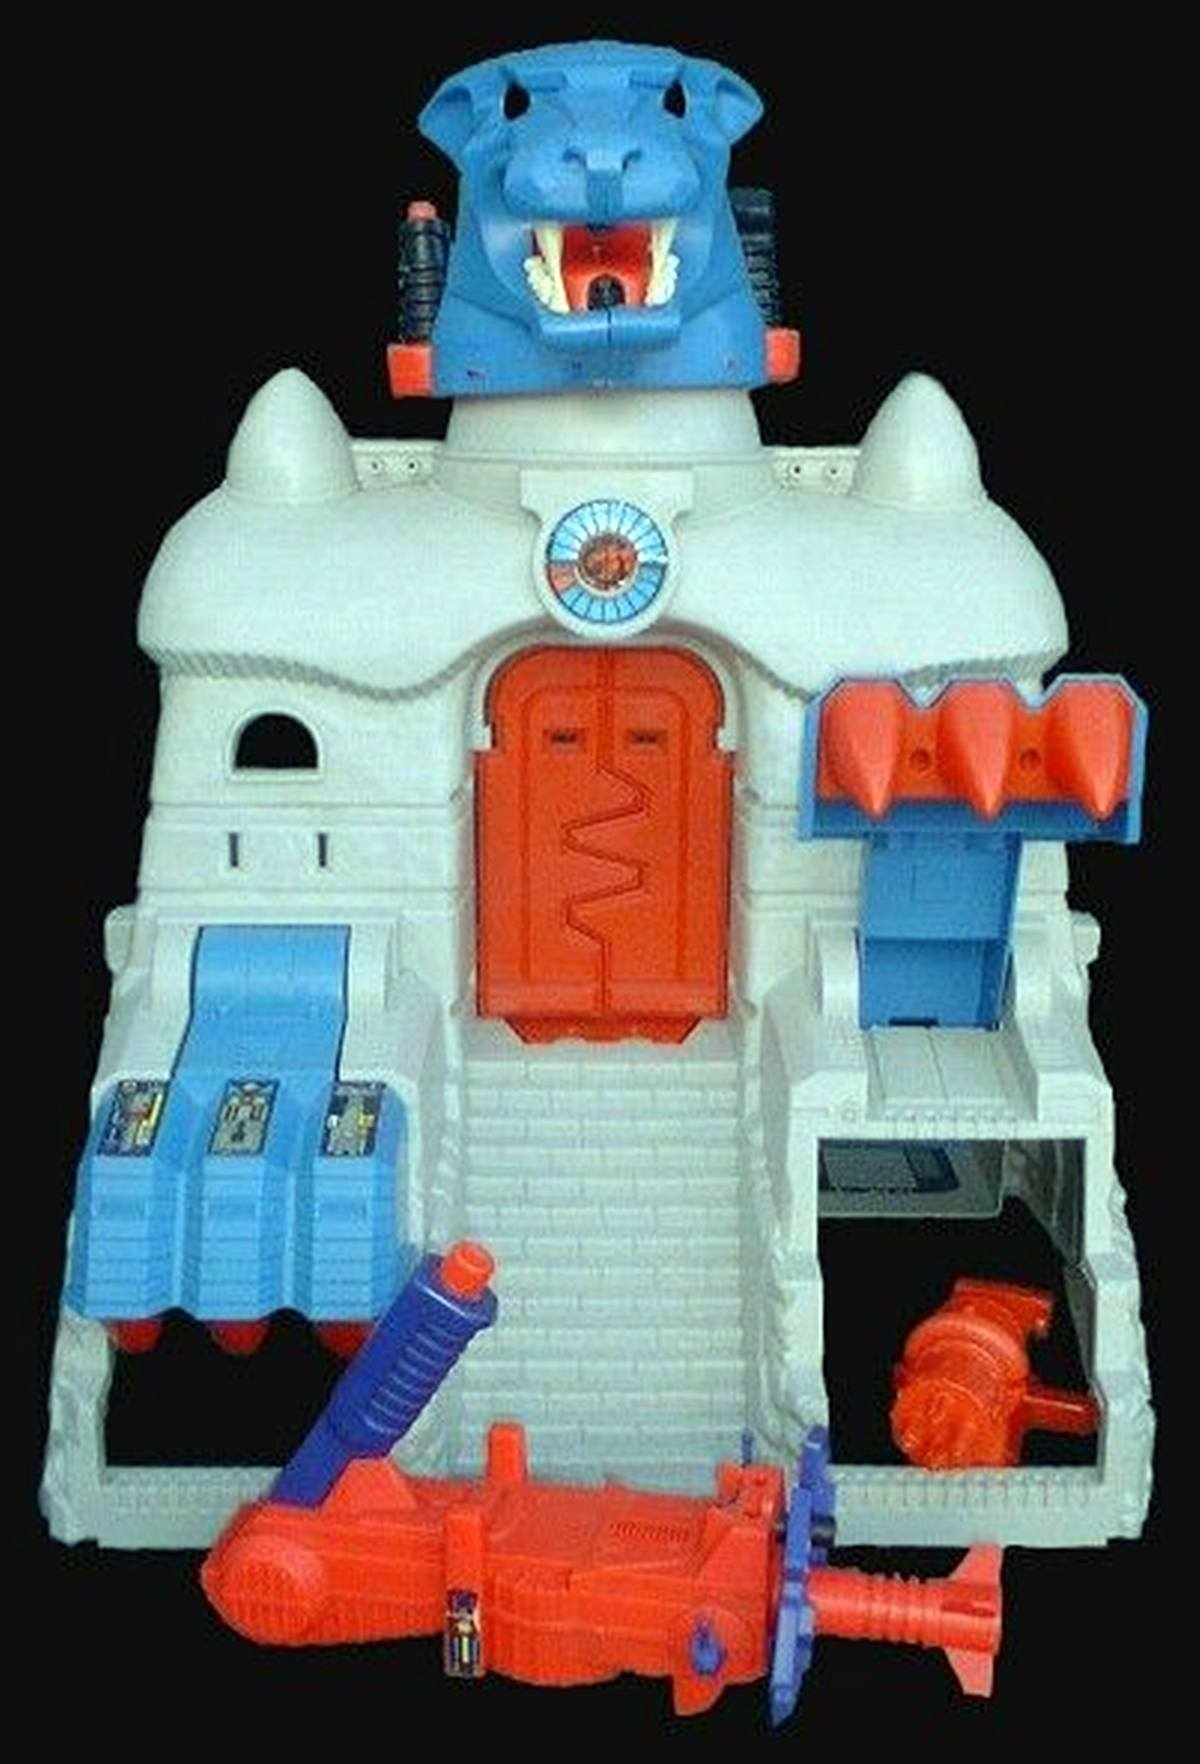 10 14 How Many Of These 16 ThunderCats Toys Did You Own?